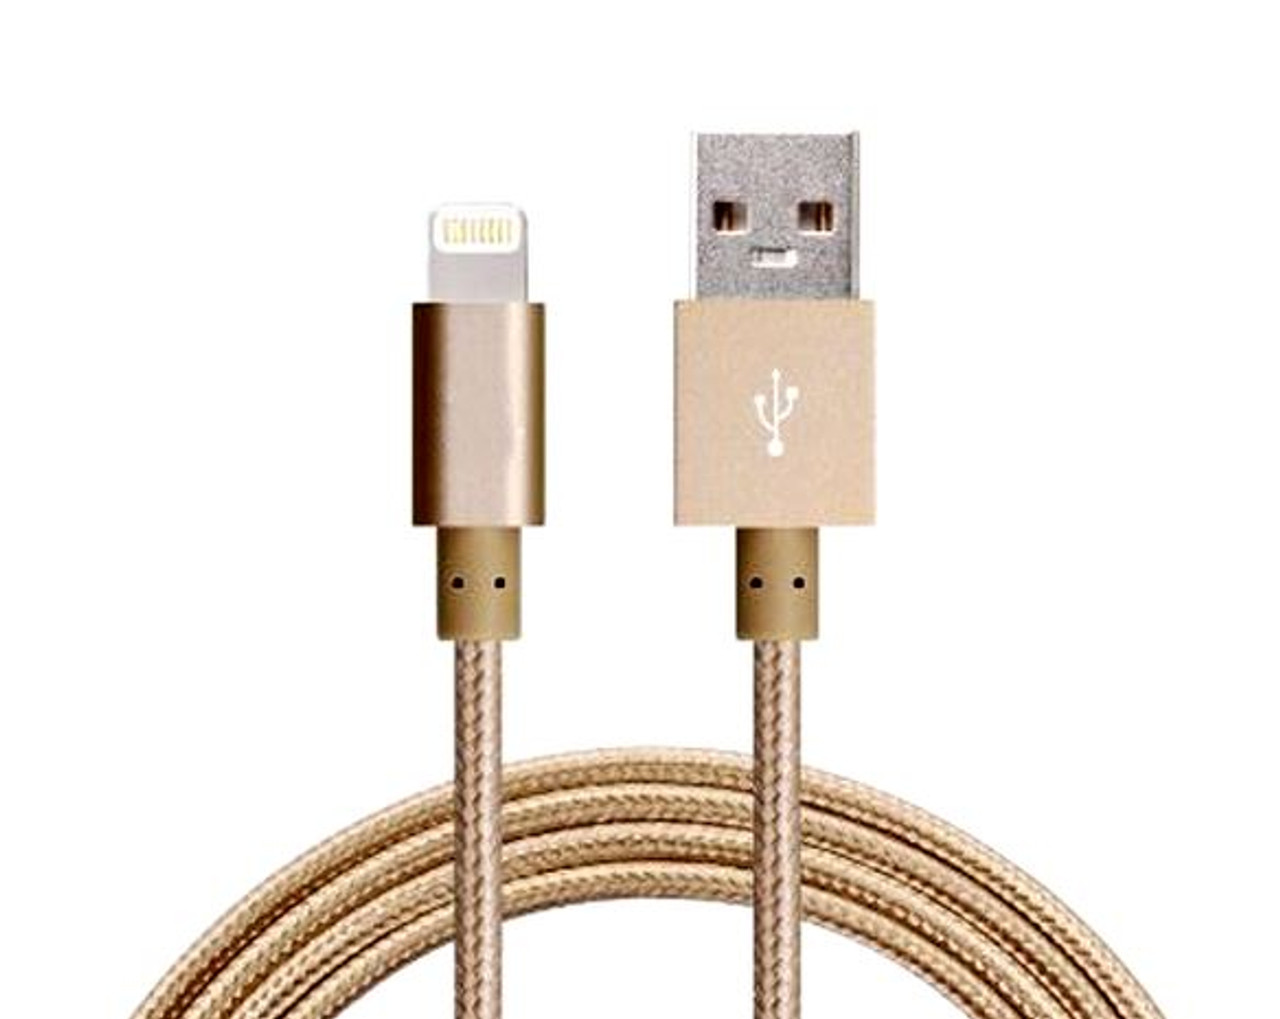 Product image for 1m USB Lightning Data Sync Charger Gold Color Cable for iPhone 5/6 | CX Computer Superstore